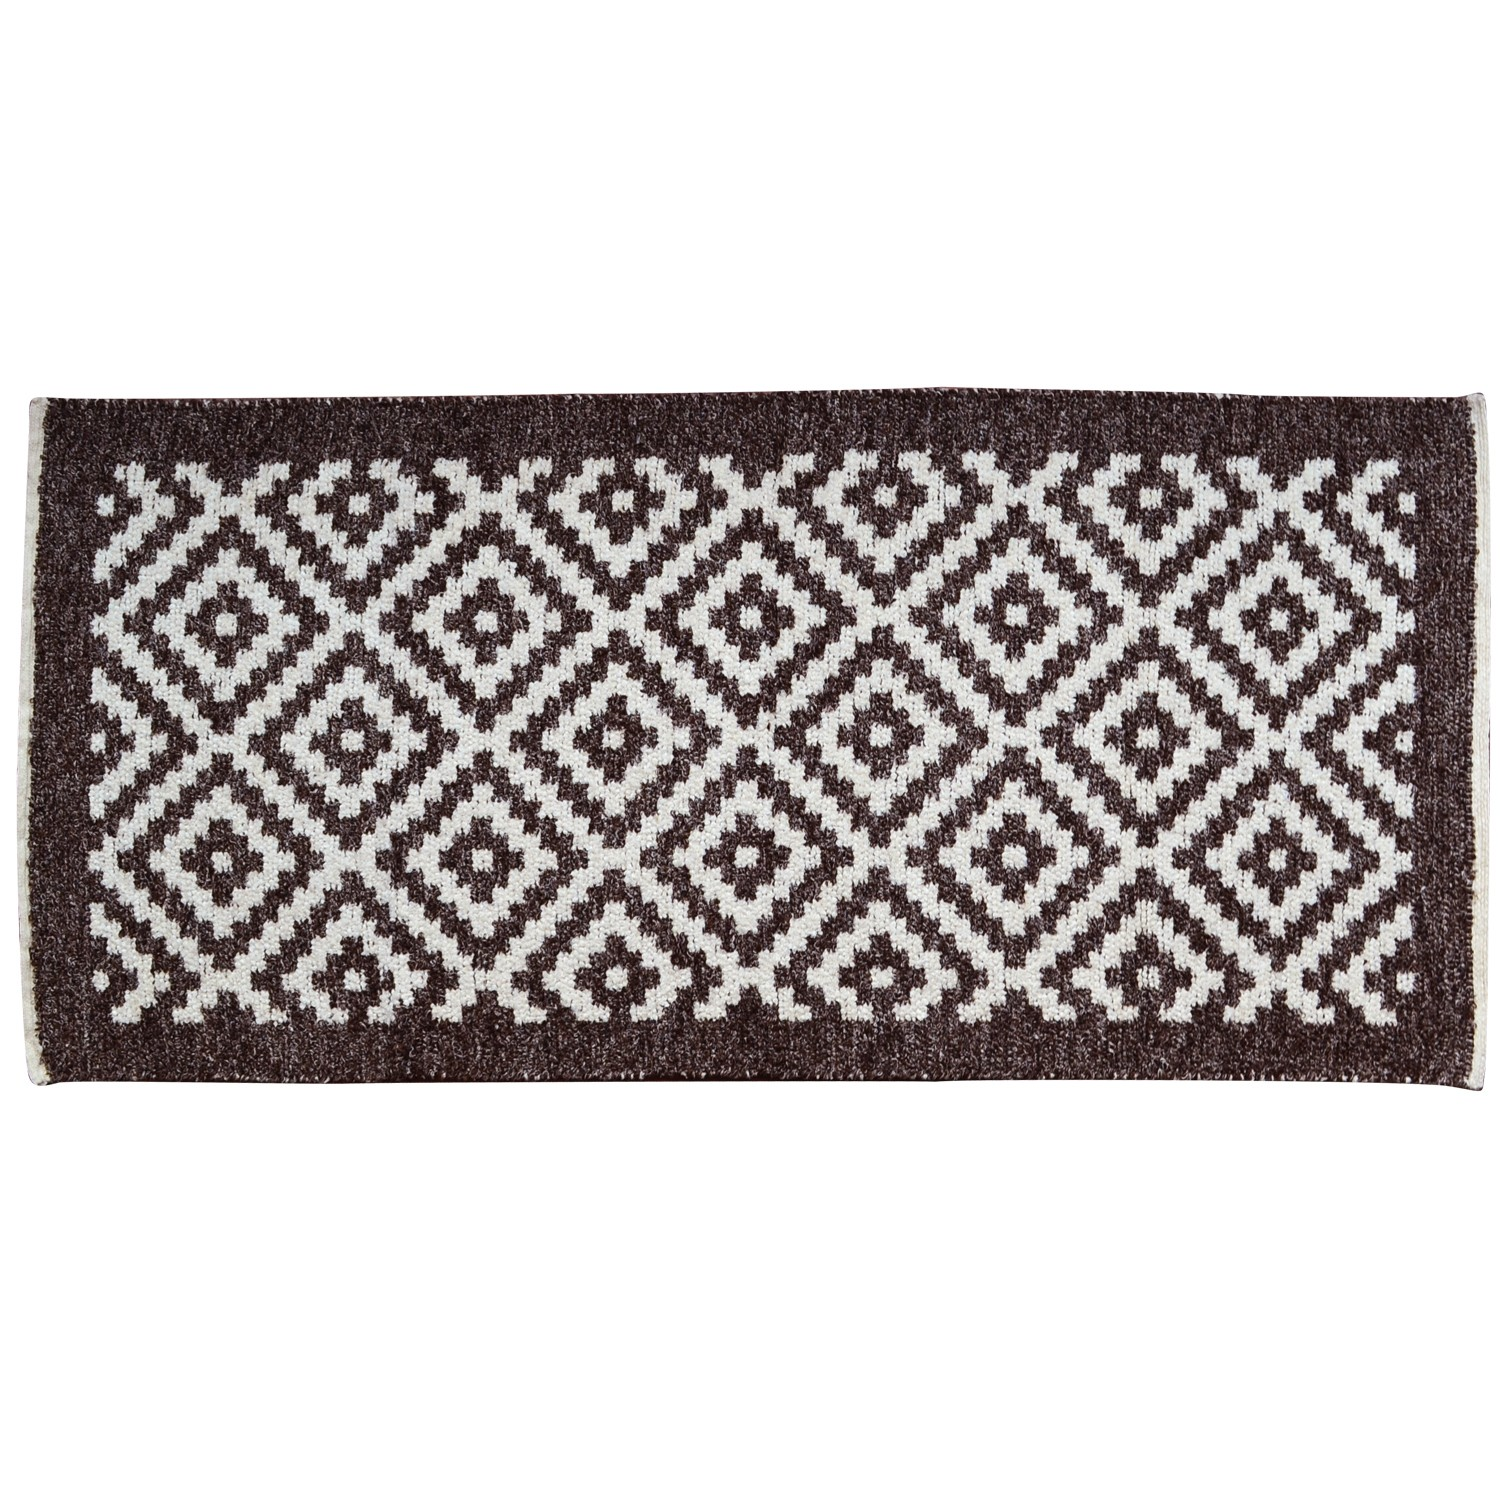 Two-sided_Cotton_Ethnic-Rhombus_Rug-Brown-1